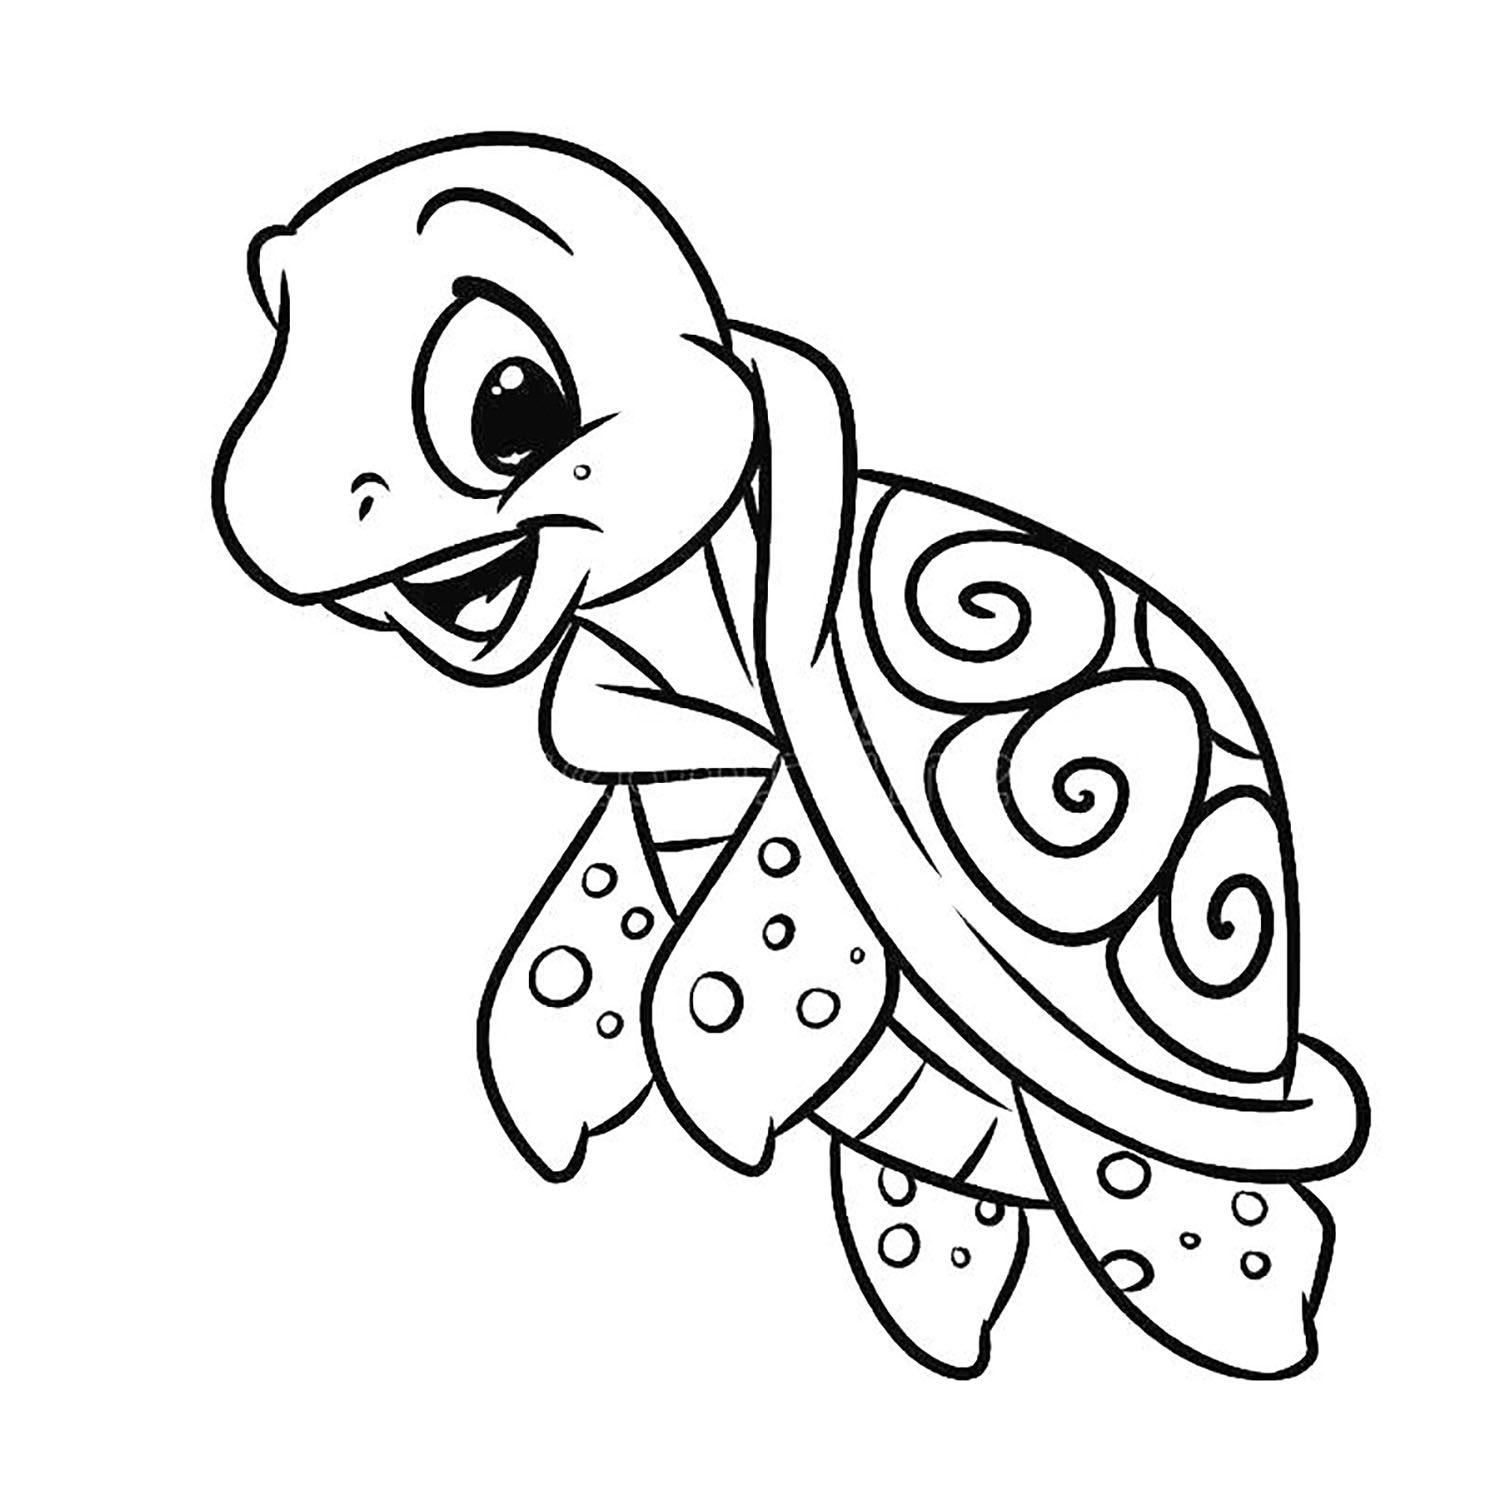 images of turtles to color cool tortoise turtle side coloring page with images color to of turtles images